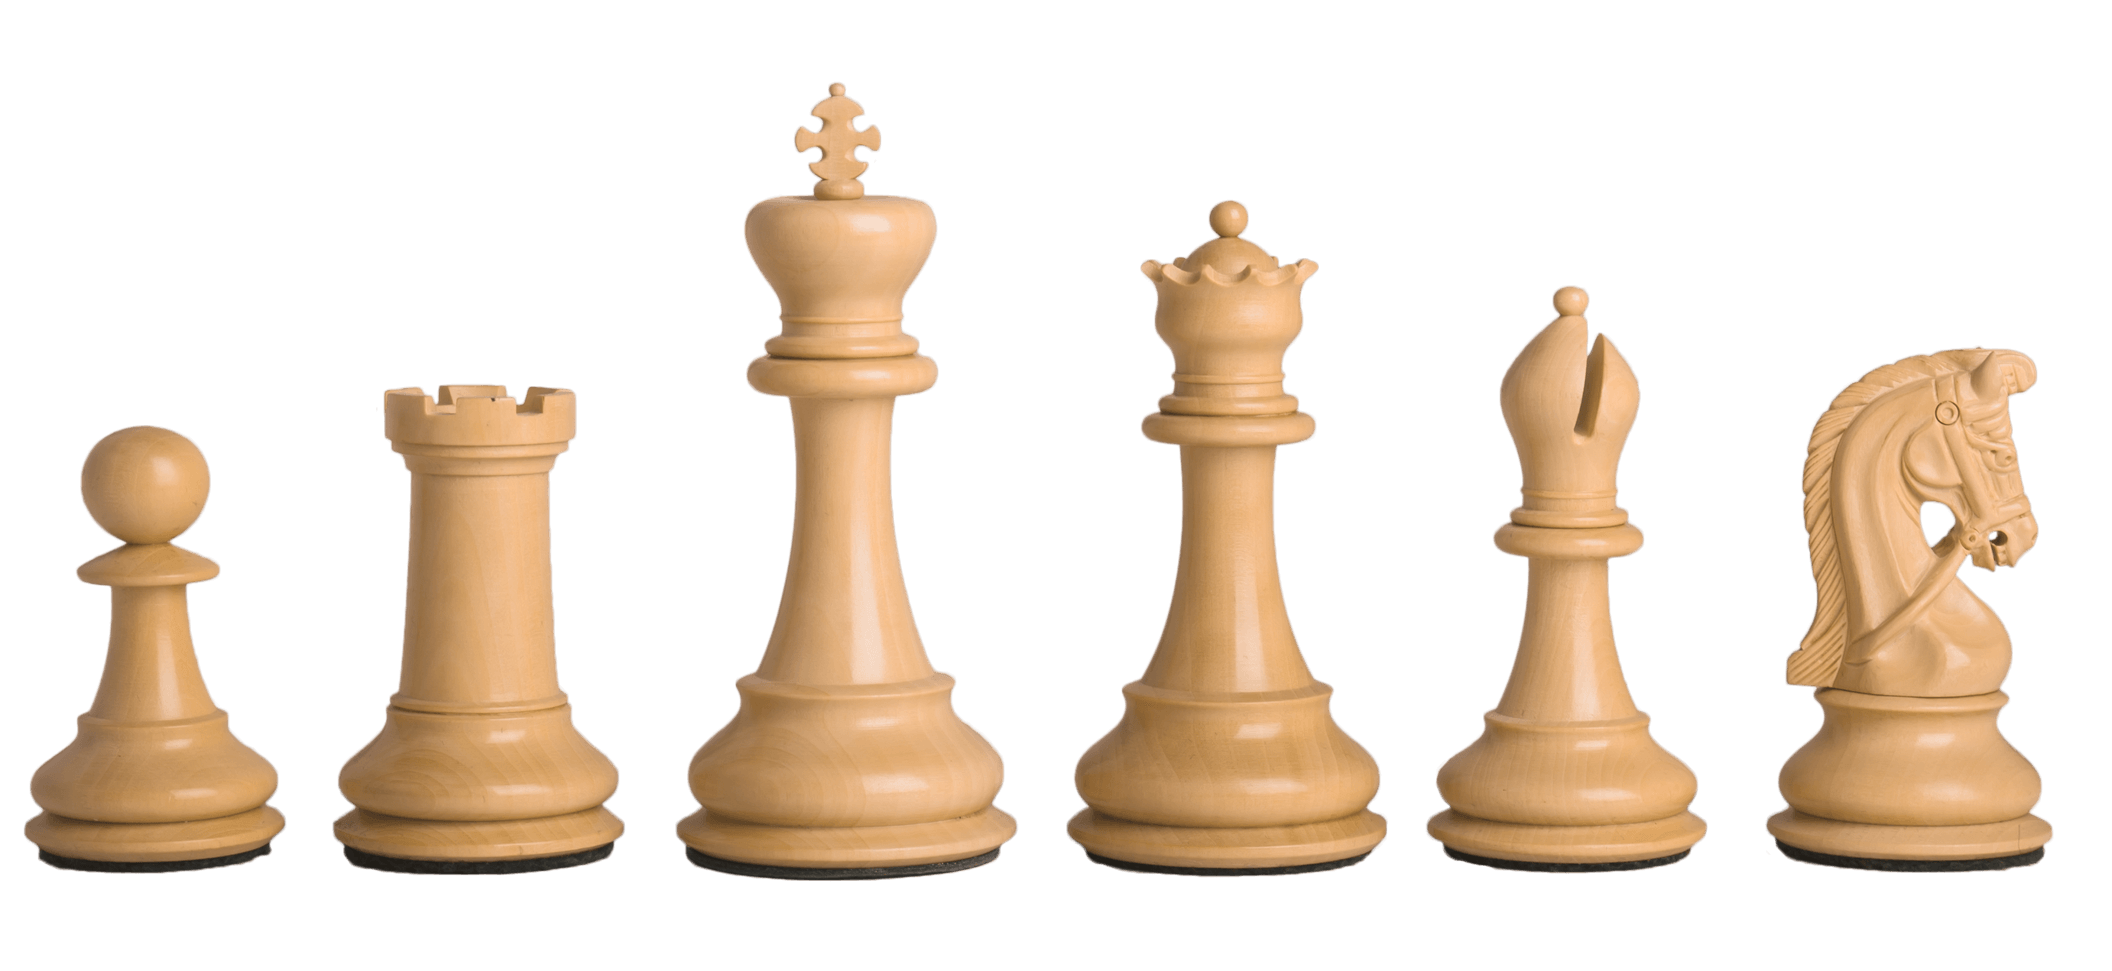 sultan series luxury chess set free png image #39315